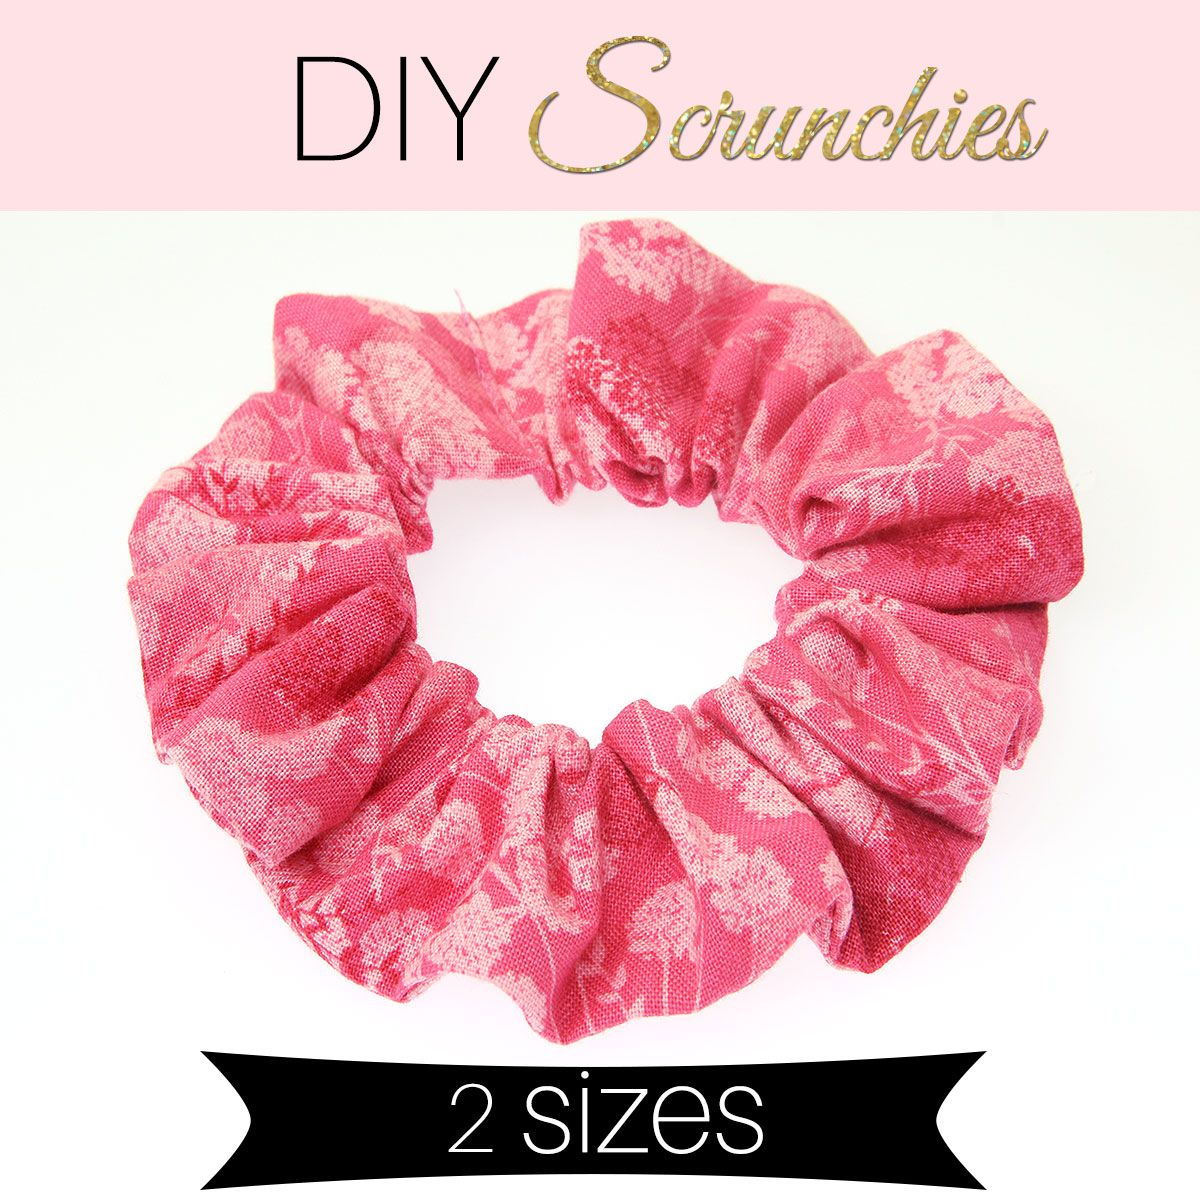 How to Make a Scrunchie - DIY Scrunchie in 2 sizes